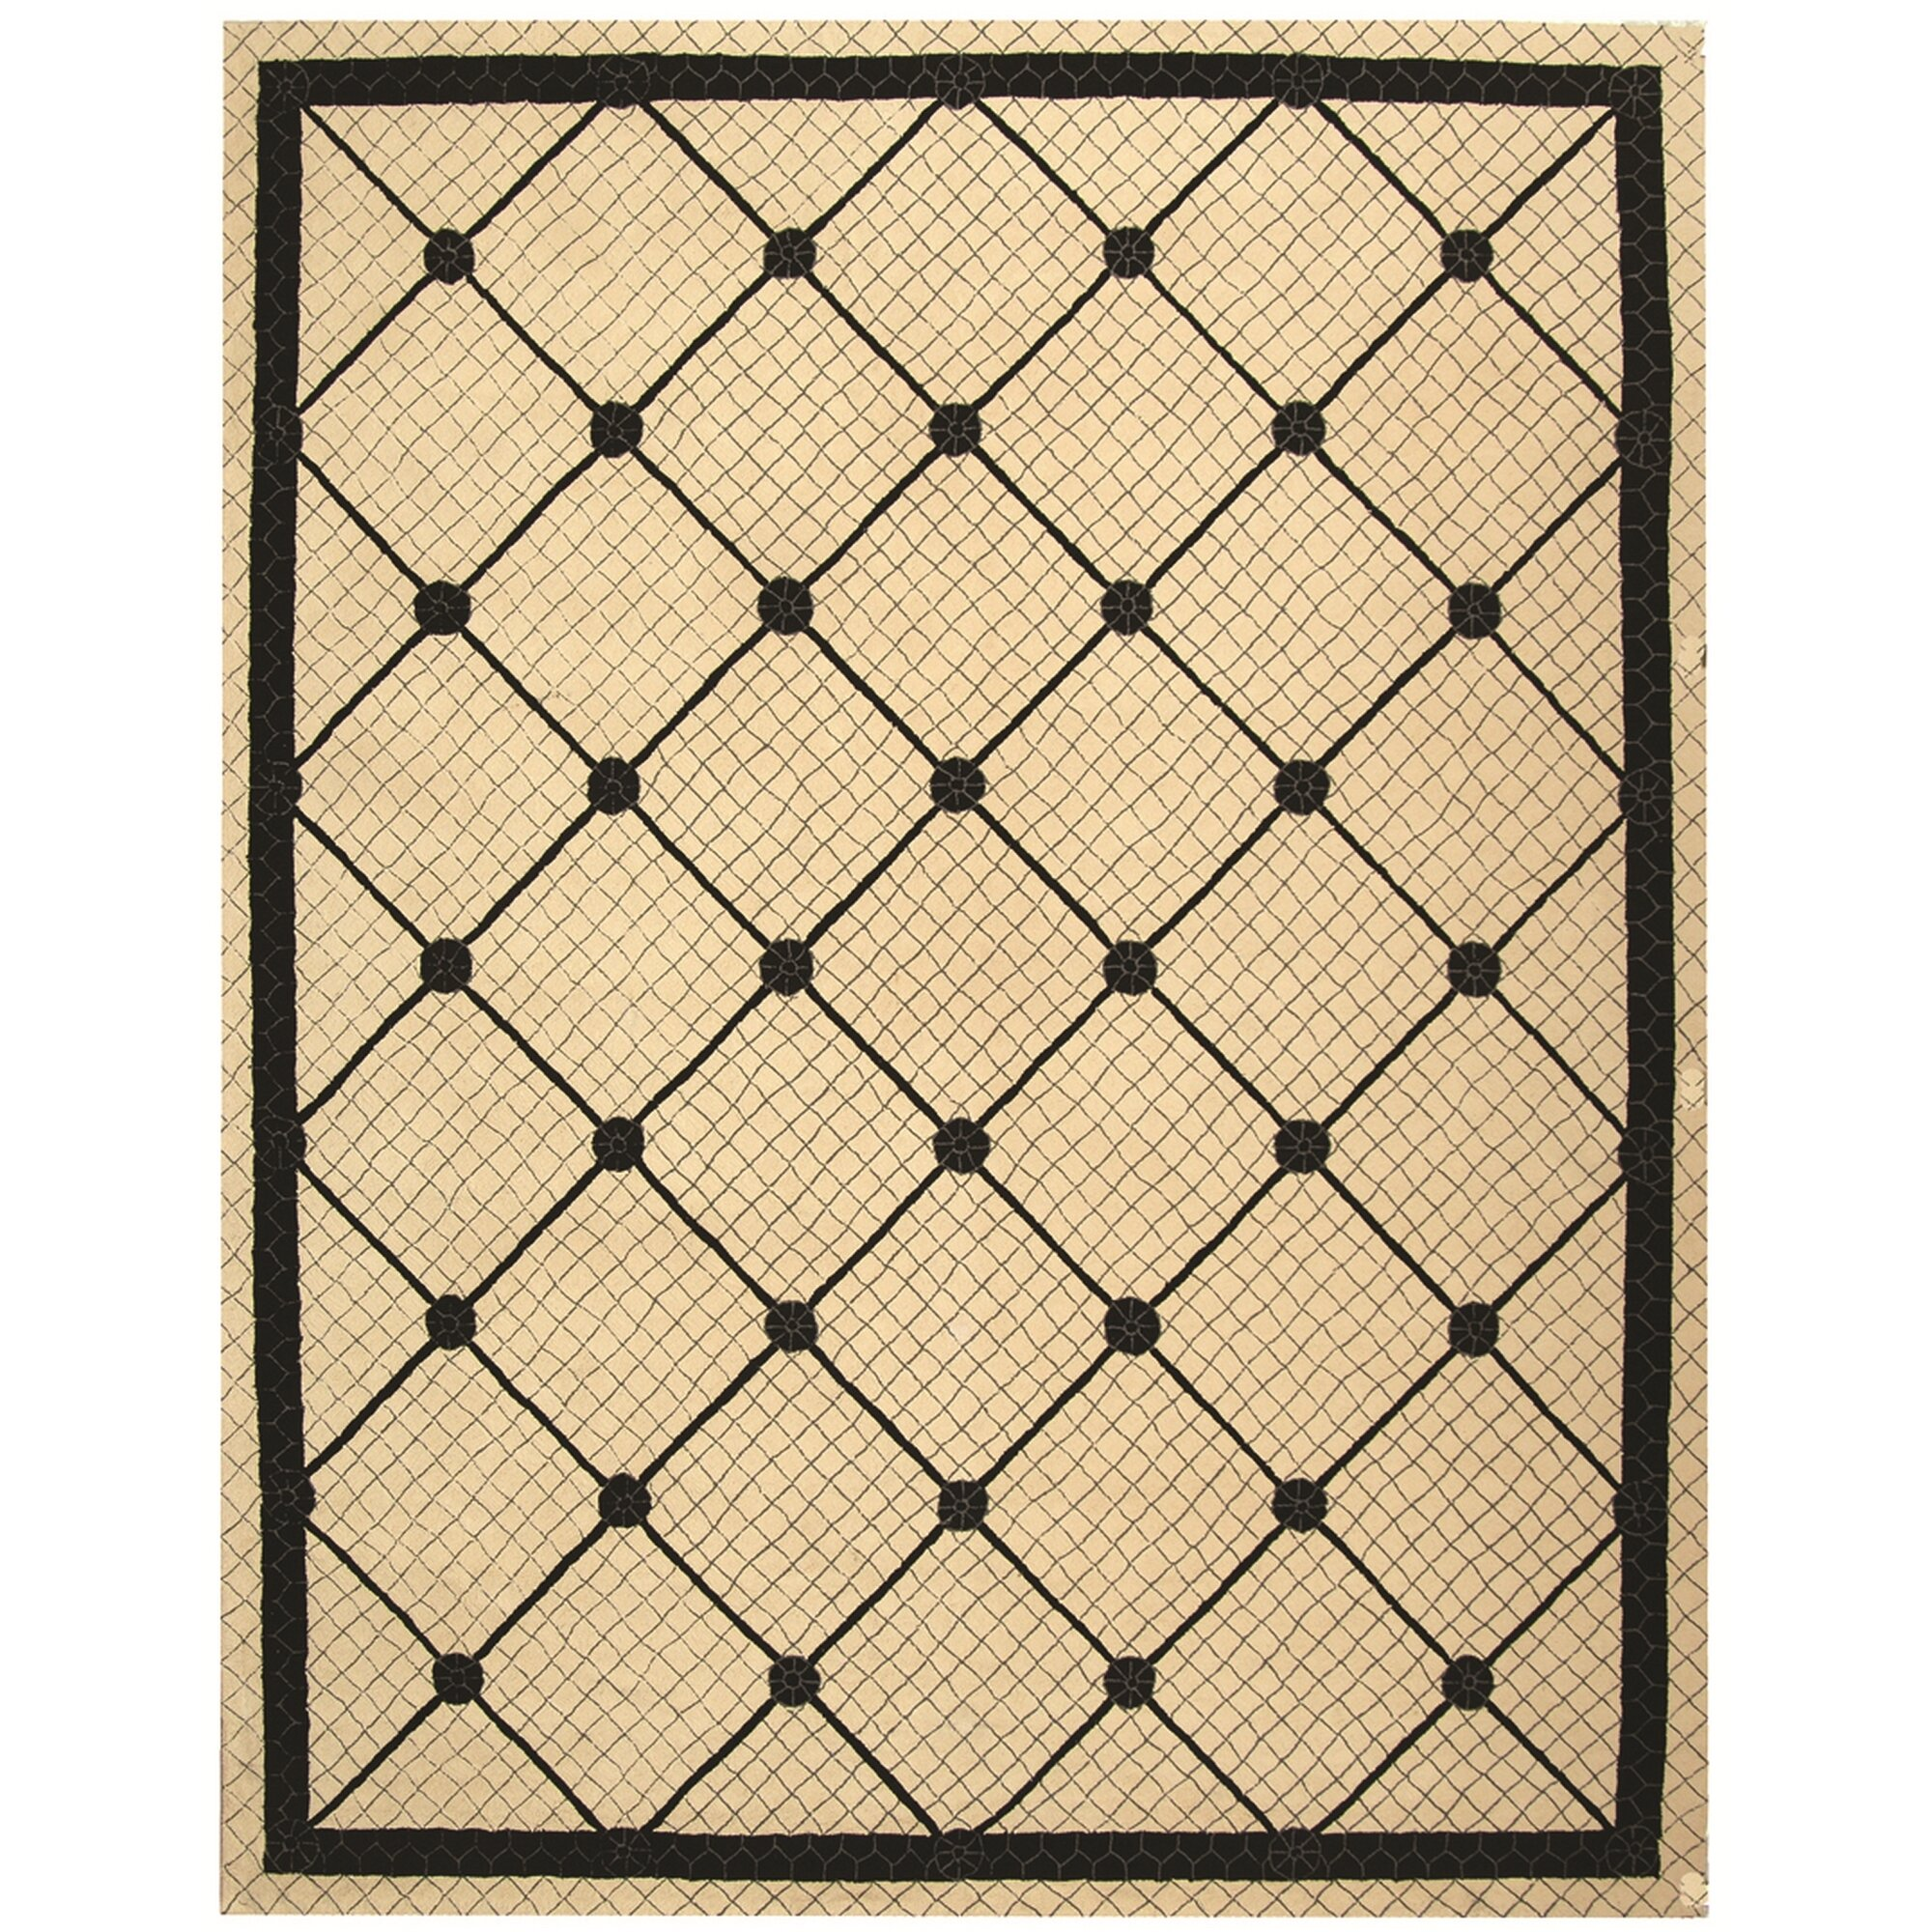 Black And White Geometric Rugs For Sale: Safavieh Newport Ivory/Black Geometric Area Rug